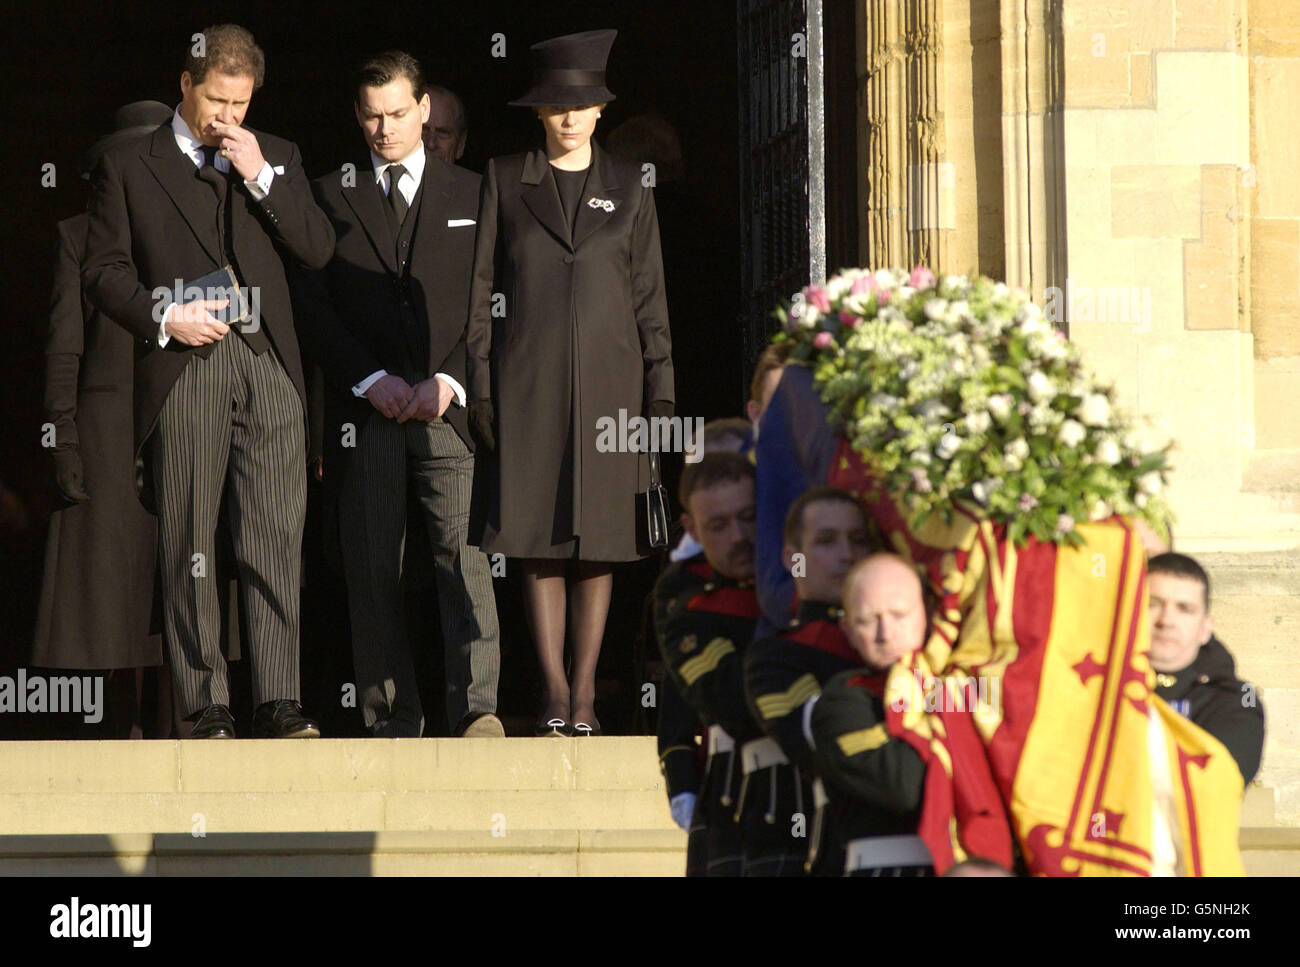 Young Princess Margaret >> Princess Margaret Funeral Stock Photo: 106809883 - Alamy